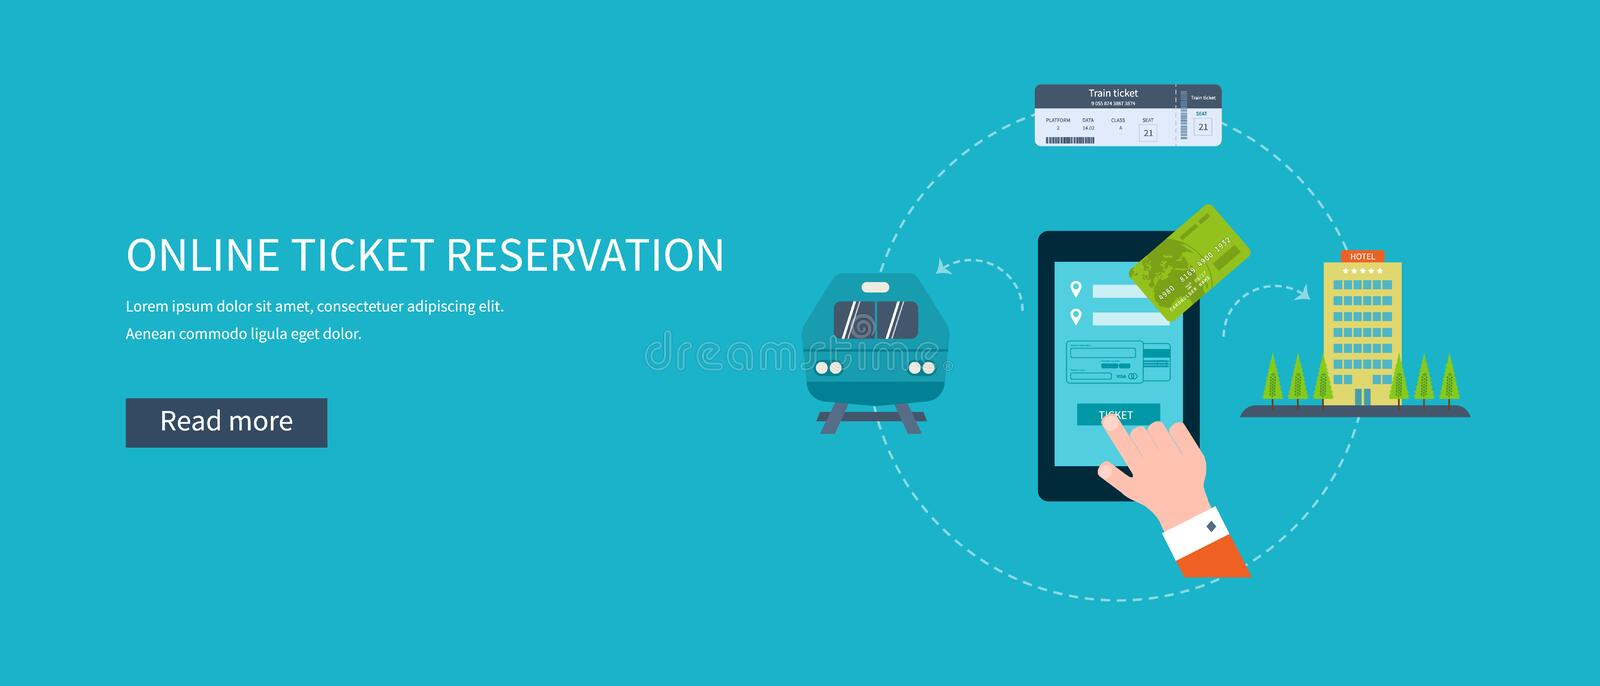 Railway station concept. Train on railway. Online ticket reservation. Flat icons vector illustration vector illustration